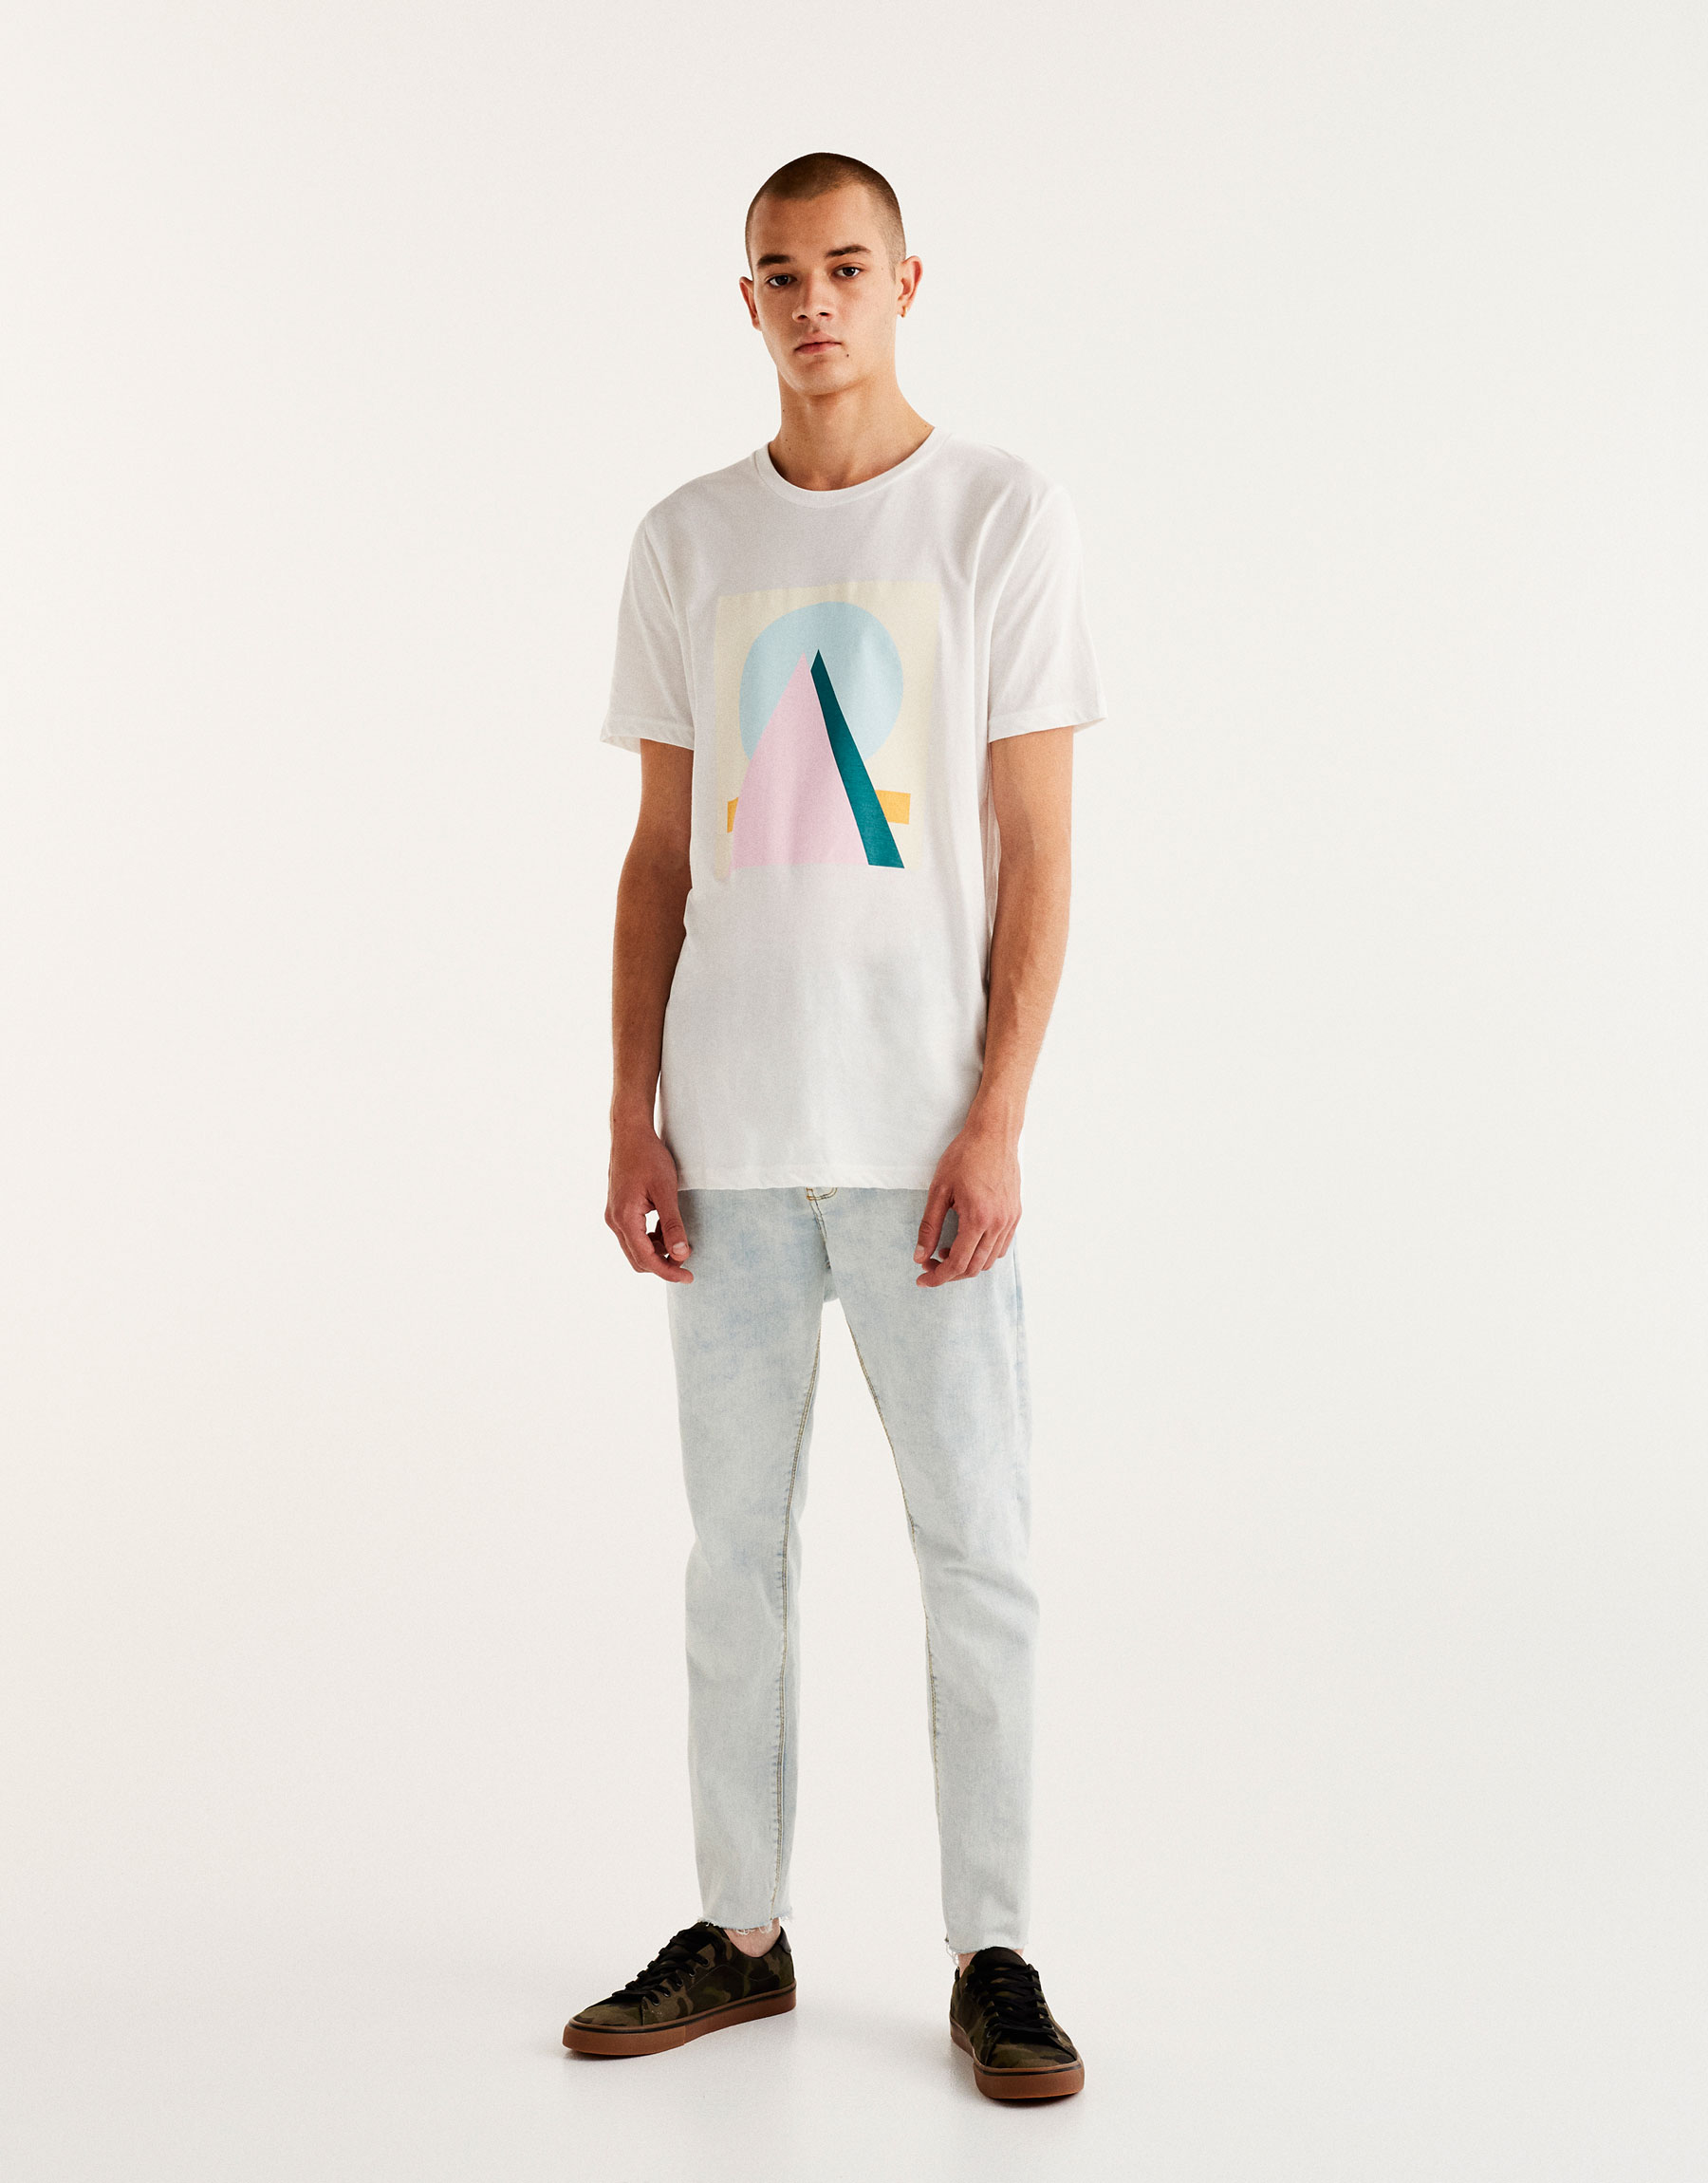 T-shirt with geometric pastel print